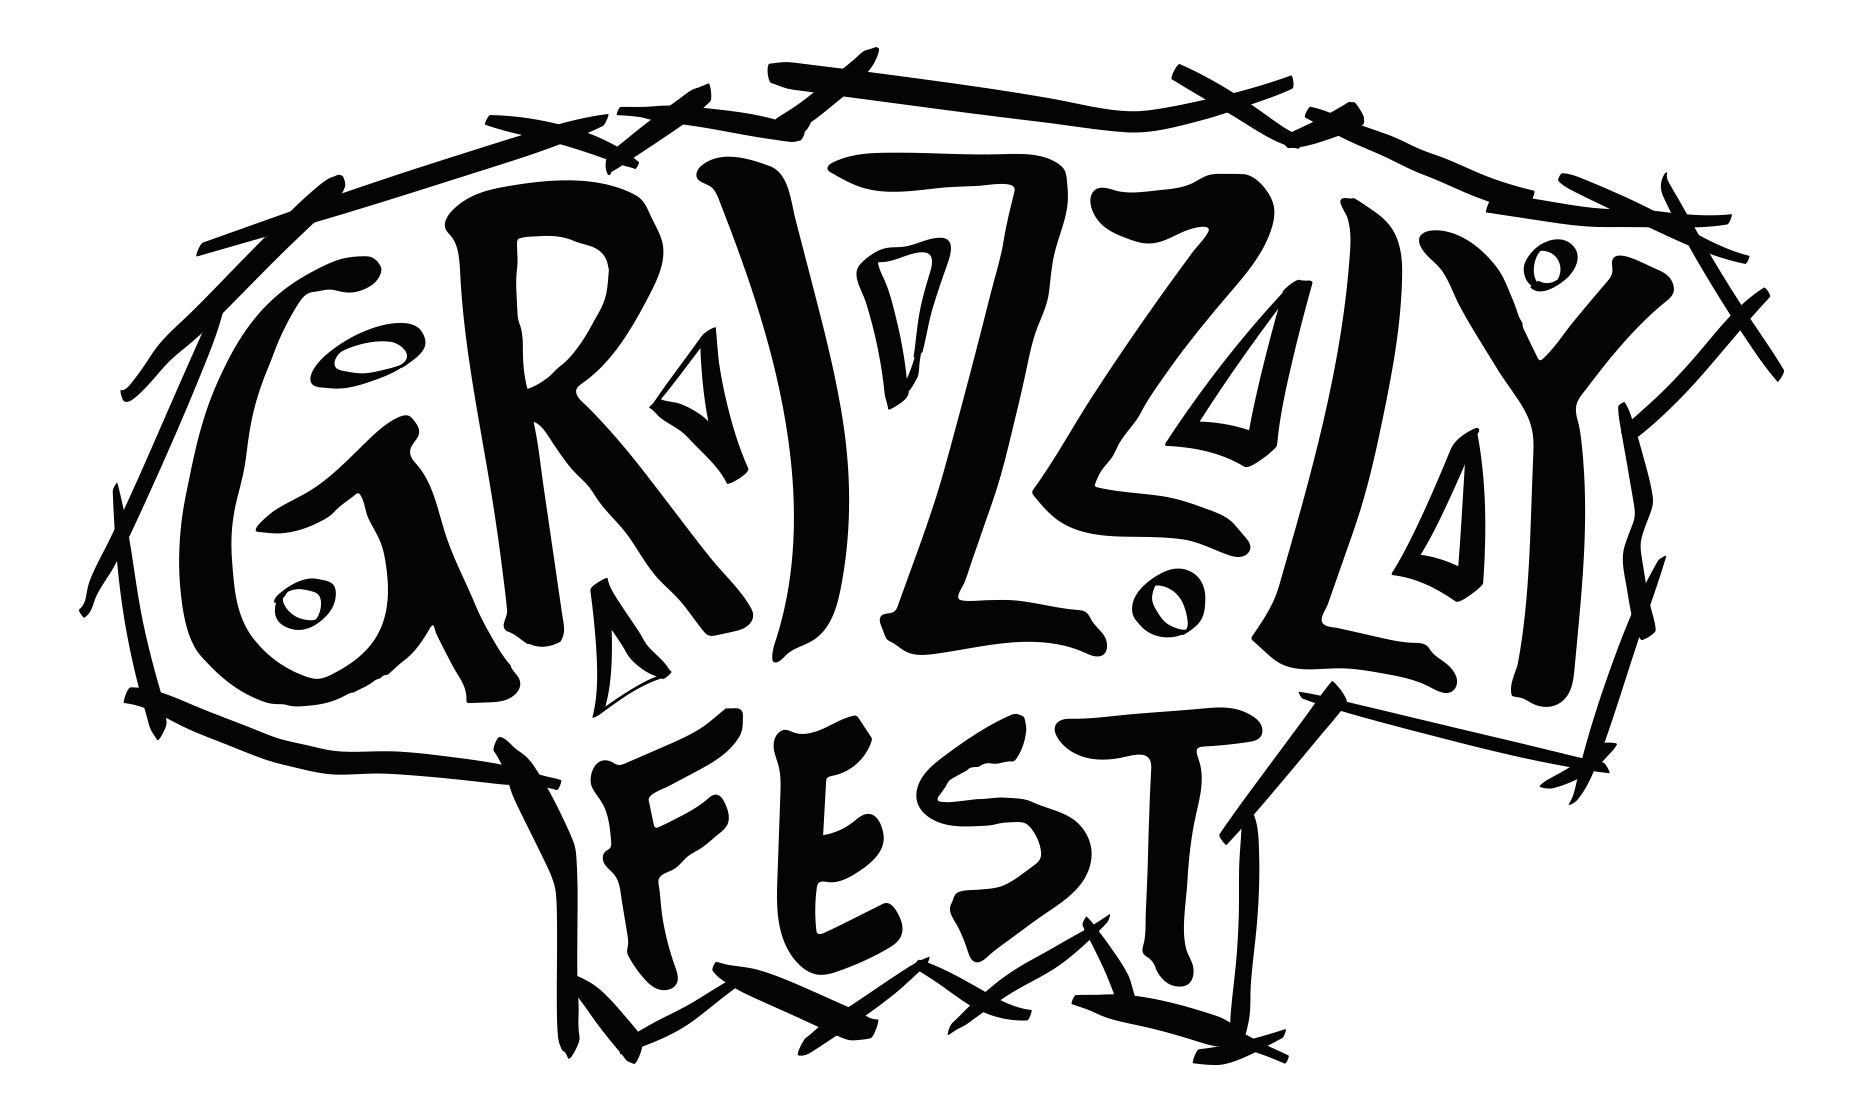 grizzly fest logo.png